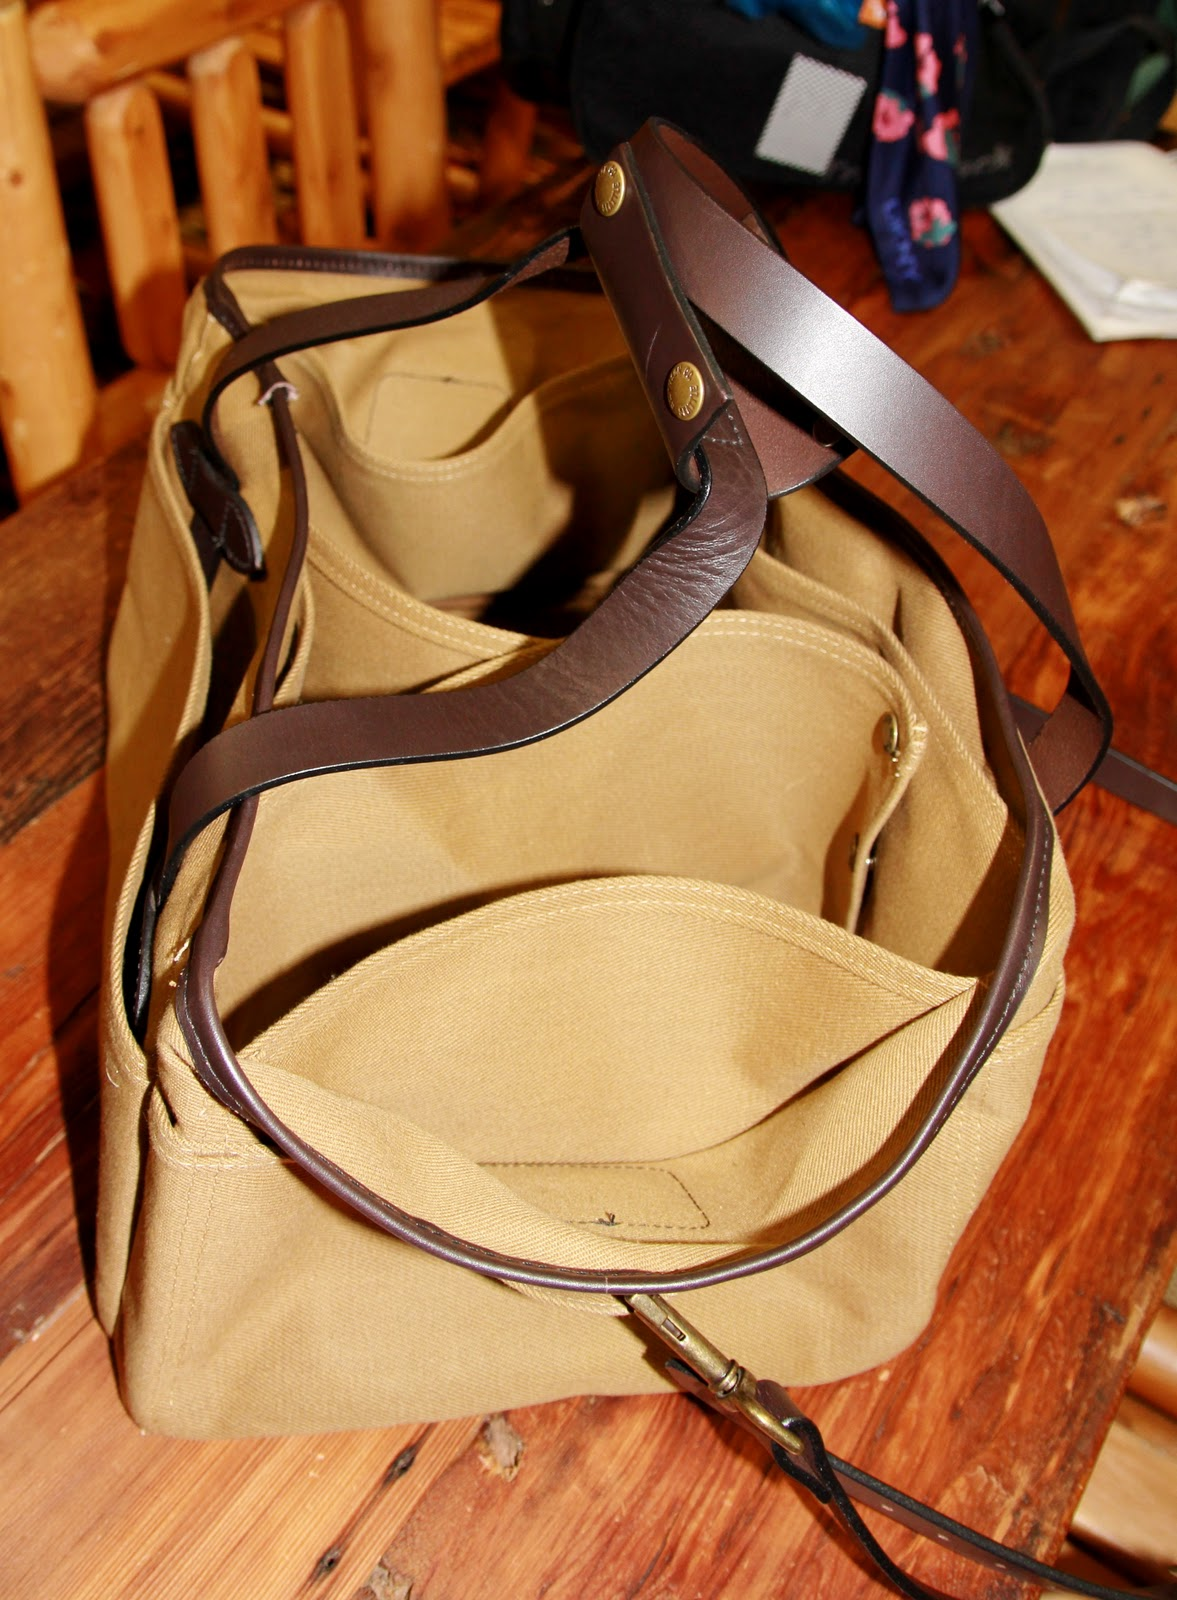 fa50530f0 ... every piece-NOW-assortment of rugged haulers---made with the Tin Cloth  or sturdy 100% Cotton Duck Canvas- and trimmed with handsome bridle  leather/nylon ...